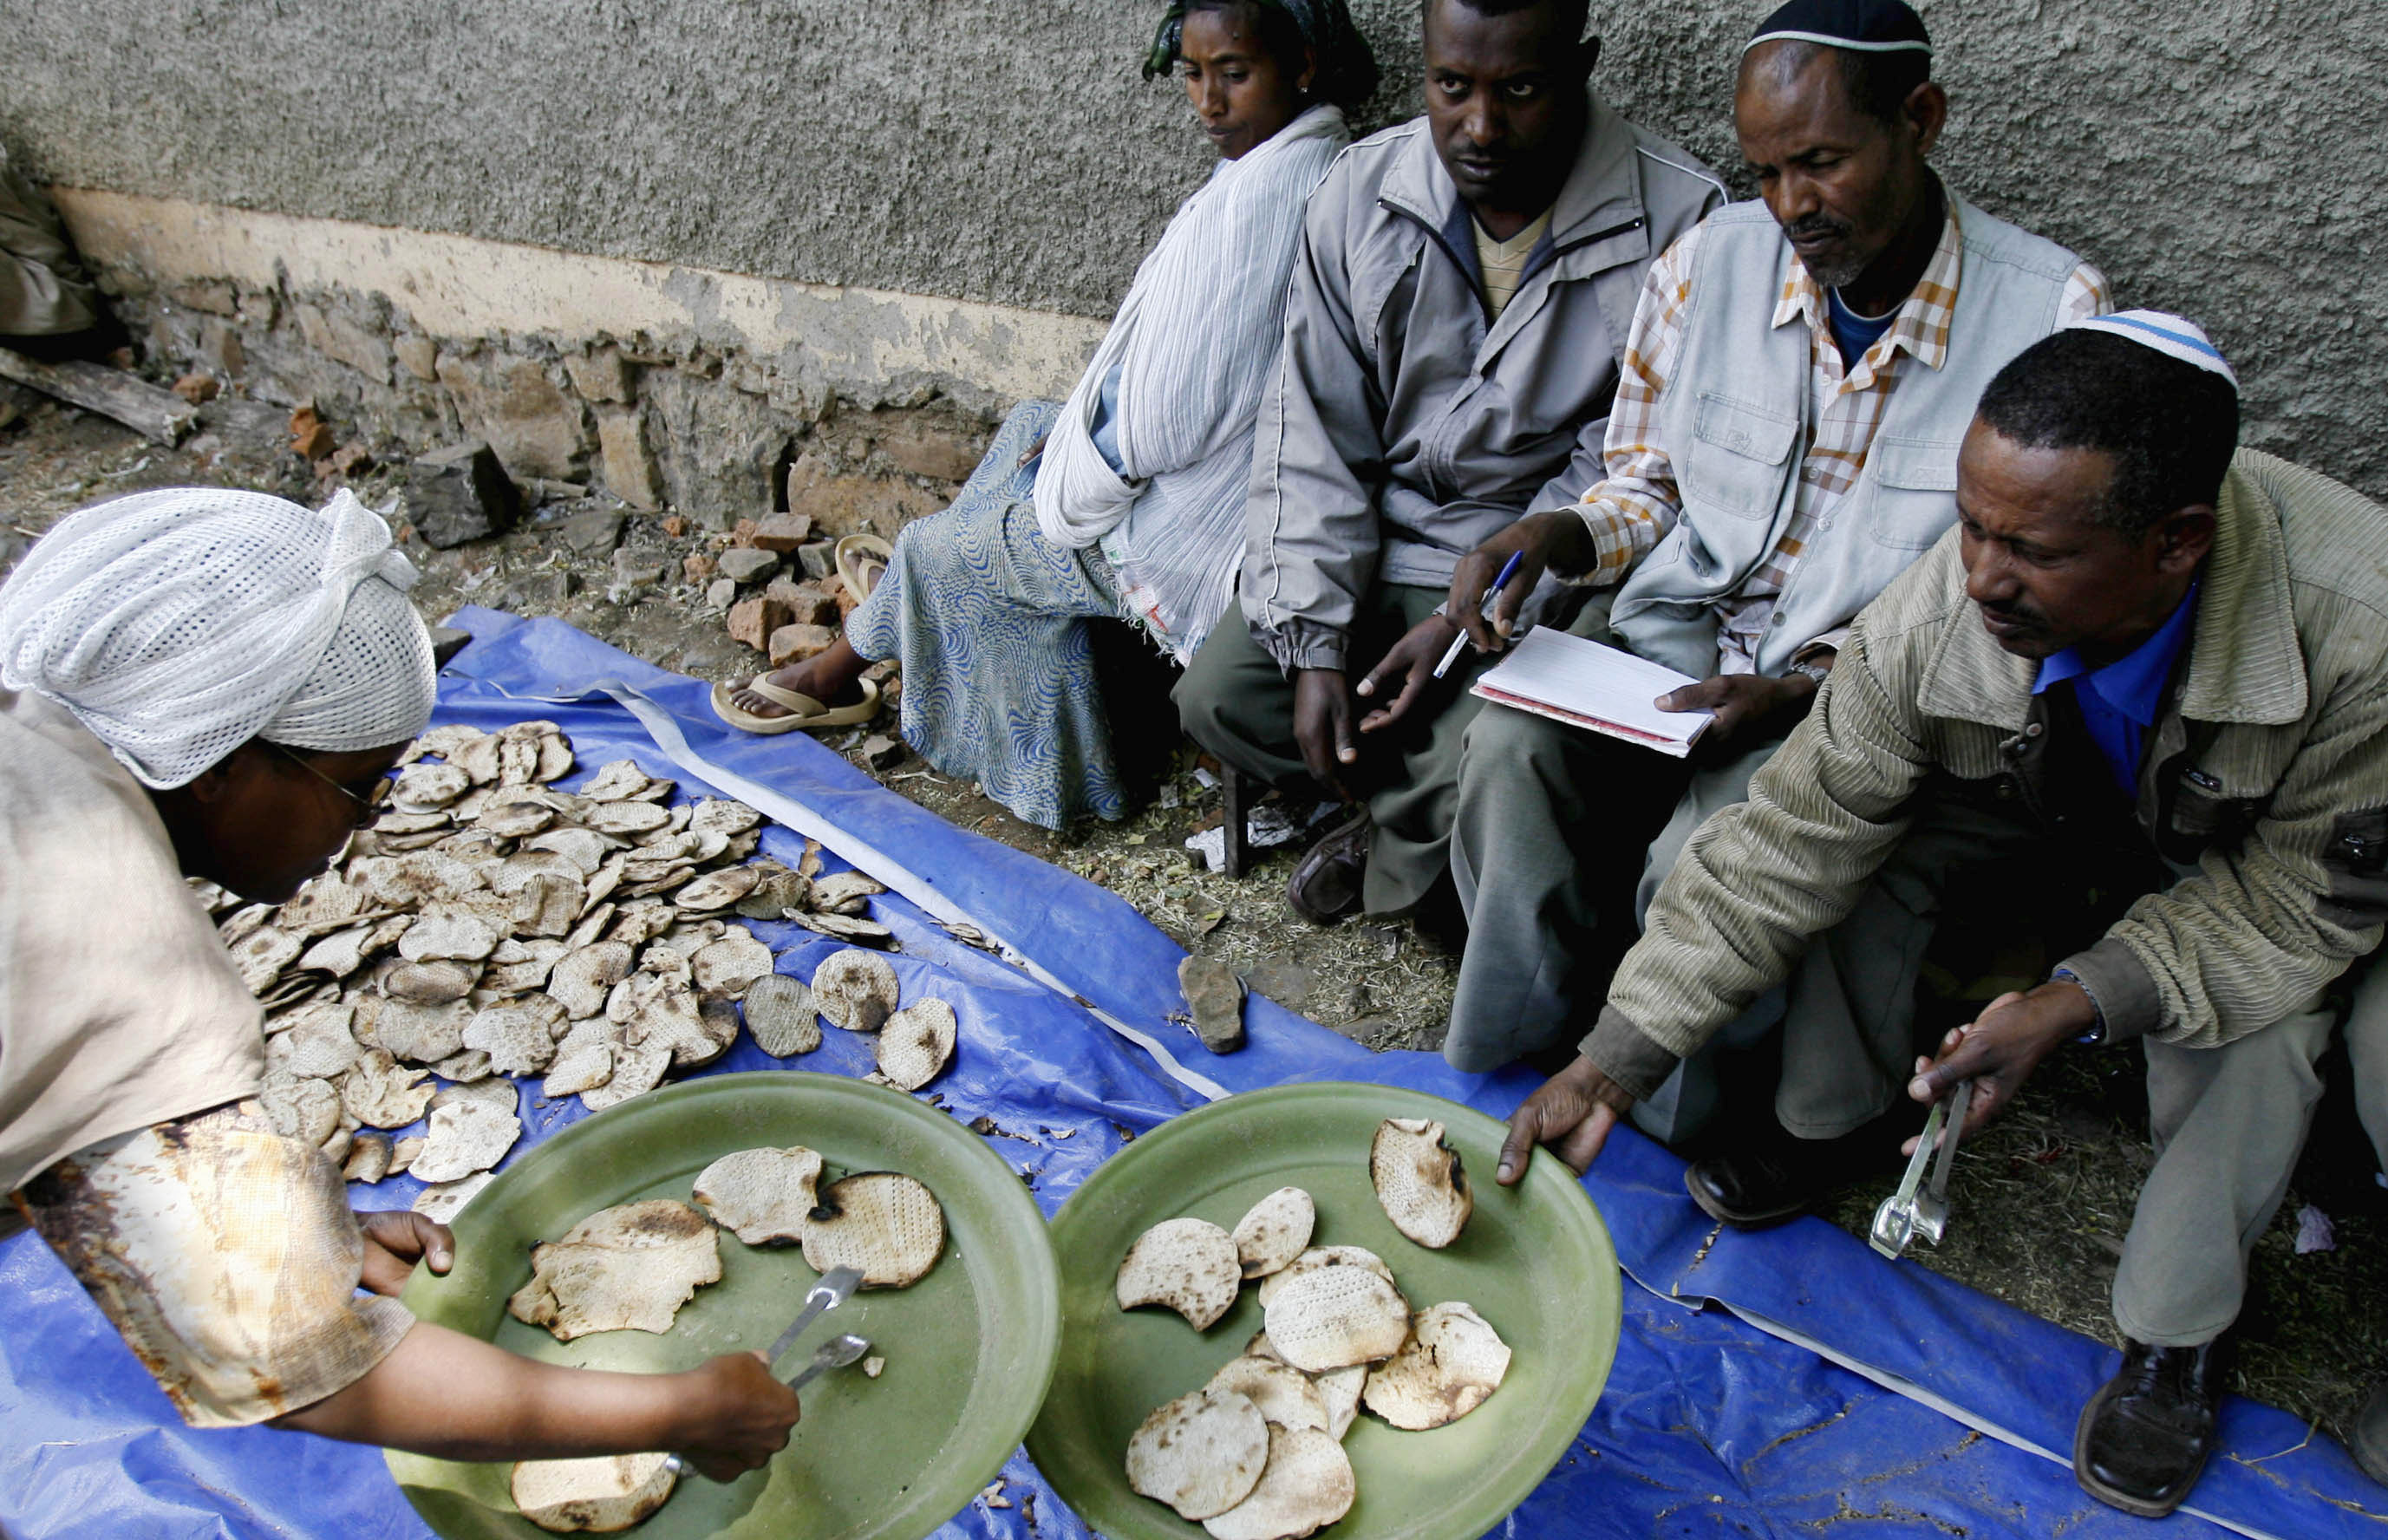 An Jewish Ethiopian woman gives matzahto a man ahead of Passover at a compound while awaiting immigration to Israel in Gondar March 9, 2007 (ELIANA APONTE/REUTERS).